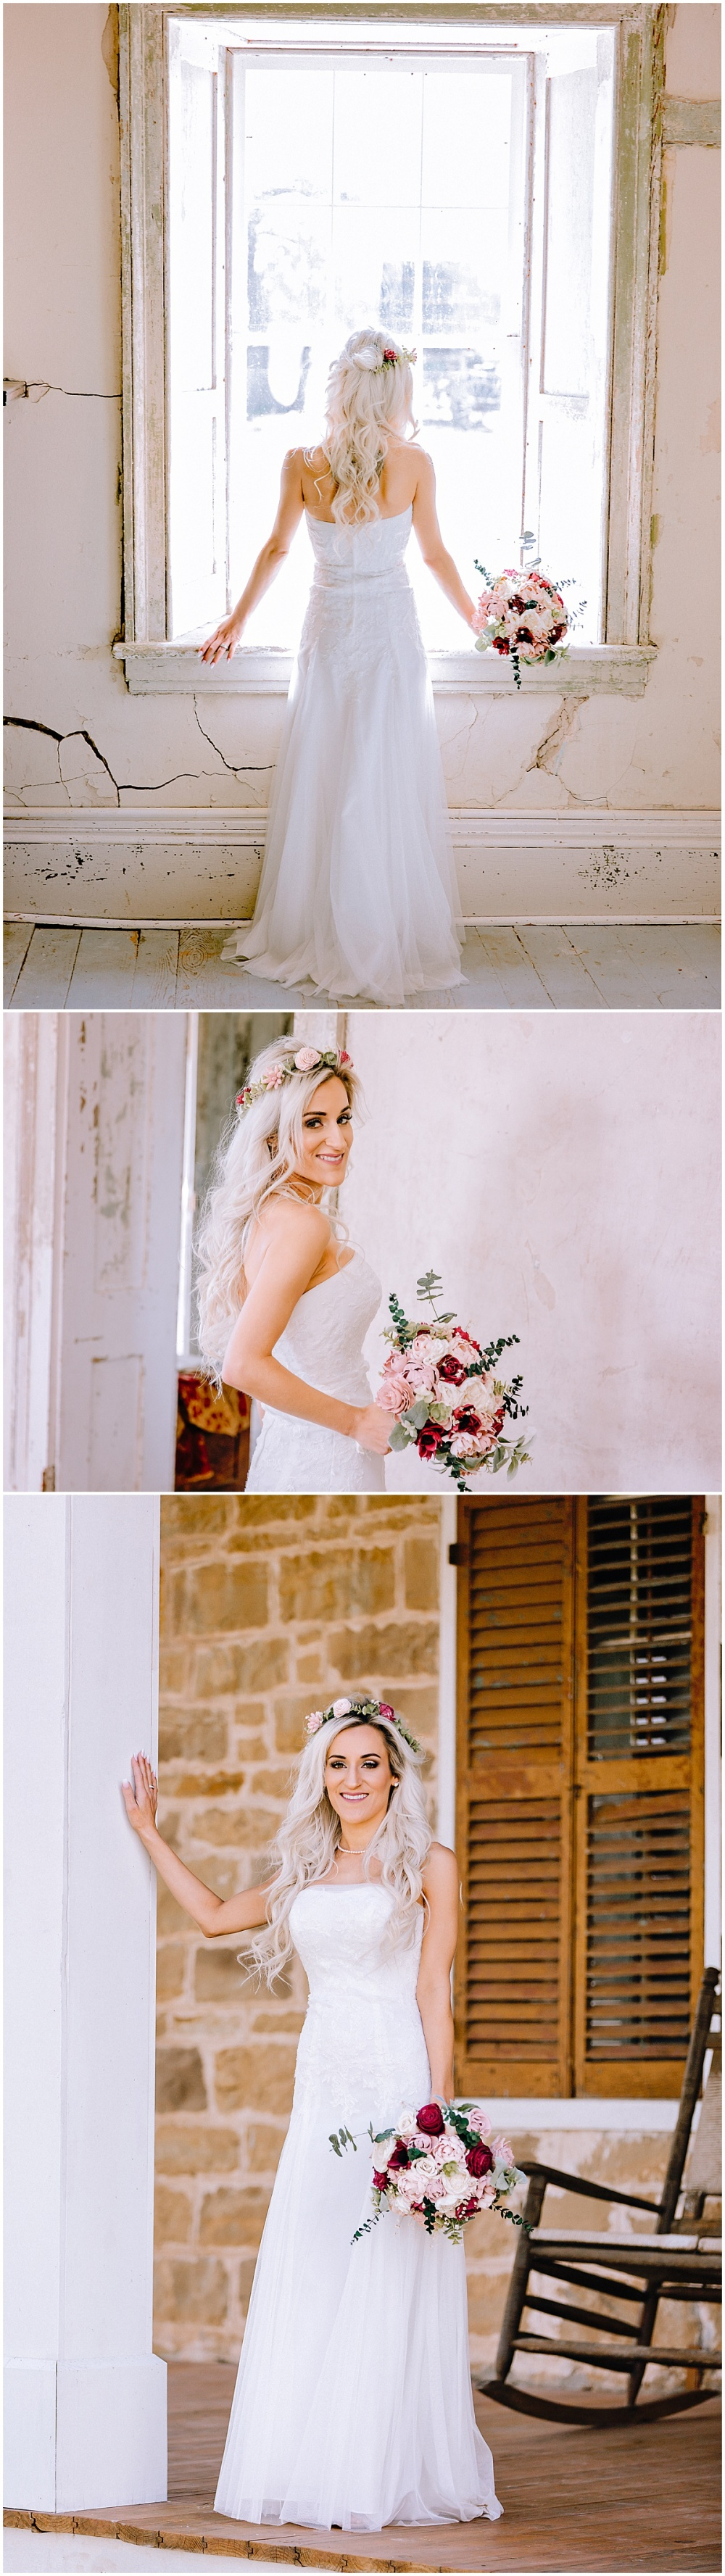 Bridal-Session-Whitehall-Polley-Mansion-LaVernia-Texas-Carly-Barton-Photography_0012.jpg